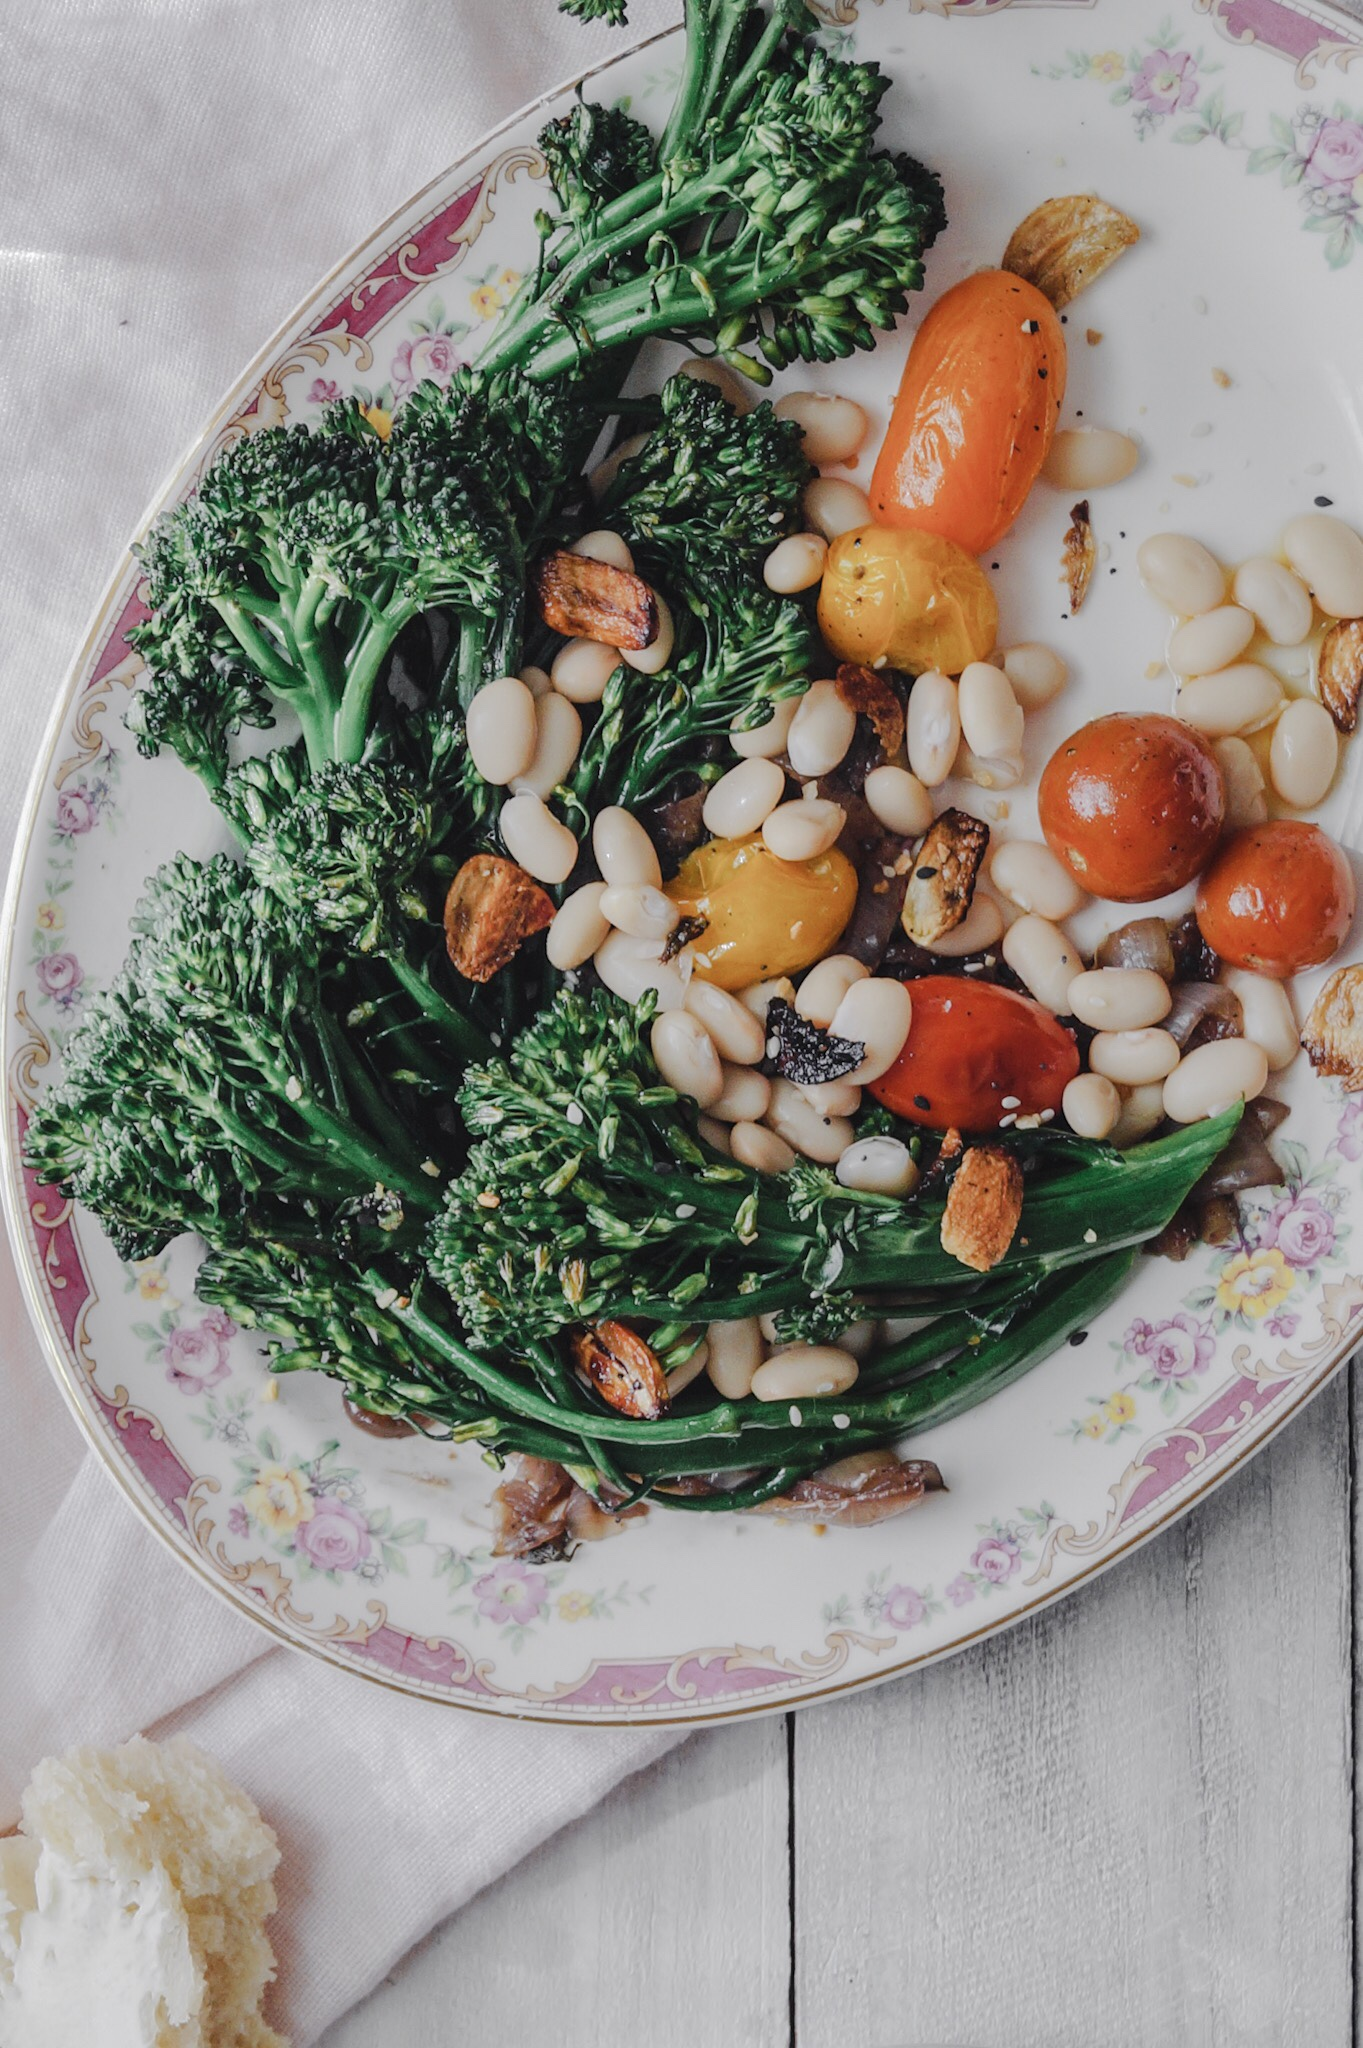 winter salad, healthy easy winter to summer salad recipe with warm beans, roasted tomato, broccoli, and crispy garlic.  Amessybunkitchen.com bright and light food photography, harsh light food photography